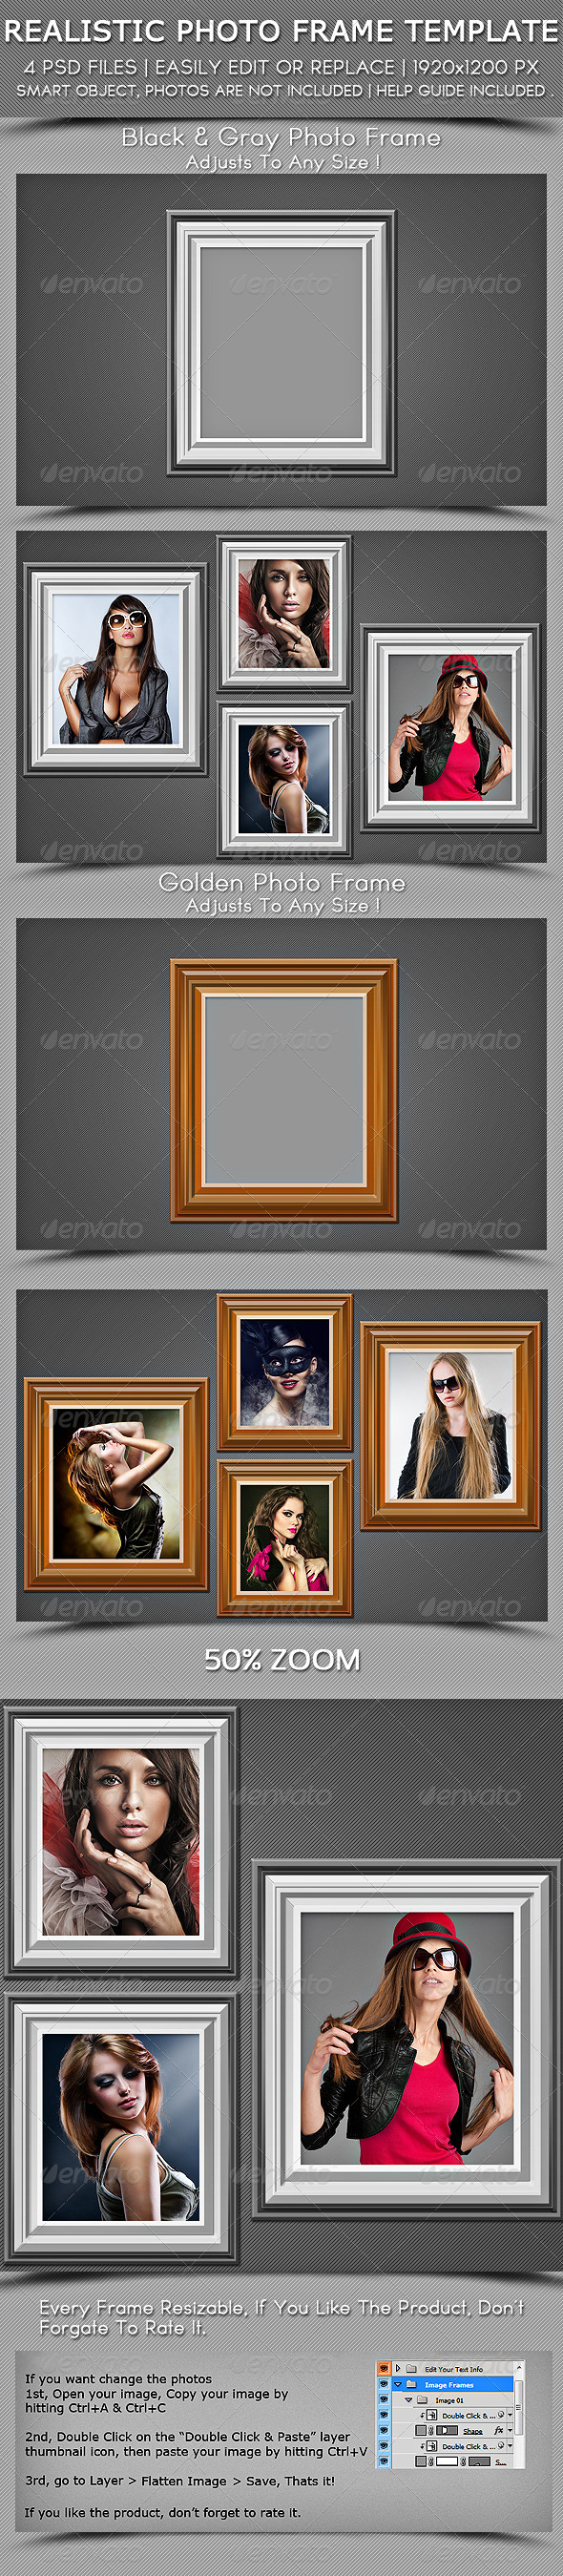 GraphicRiver Realestic Photo Fram Template 6206448